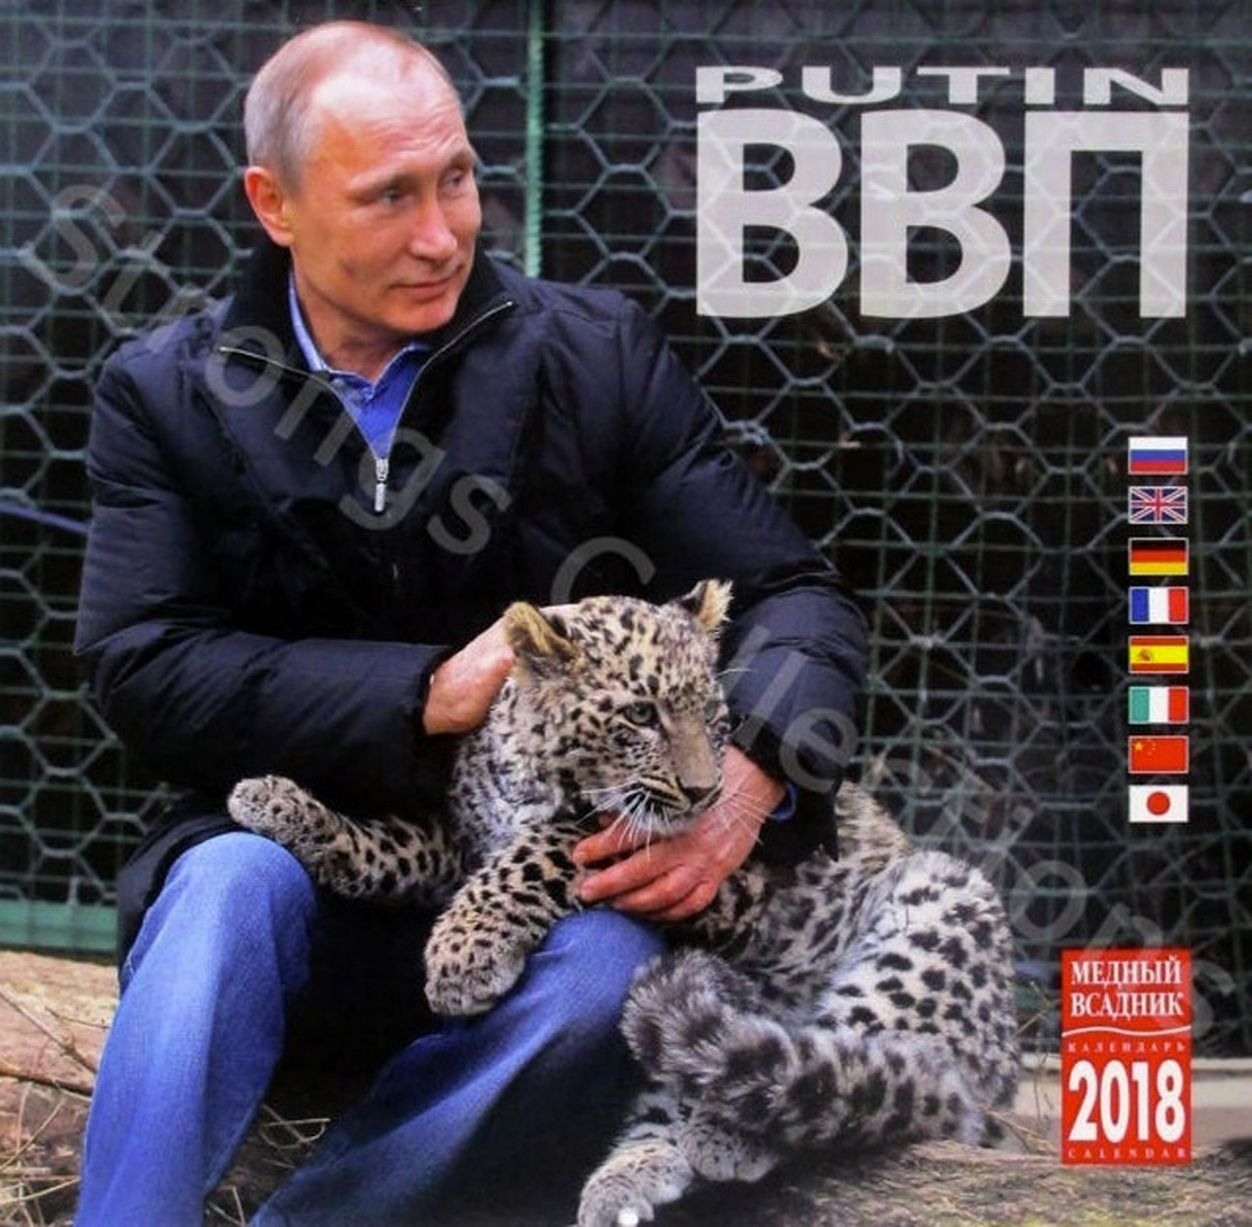 President Vladimir Putin calendar: with a Persian leopard on the front cover